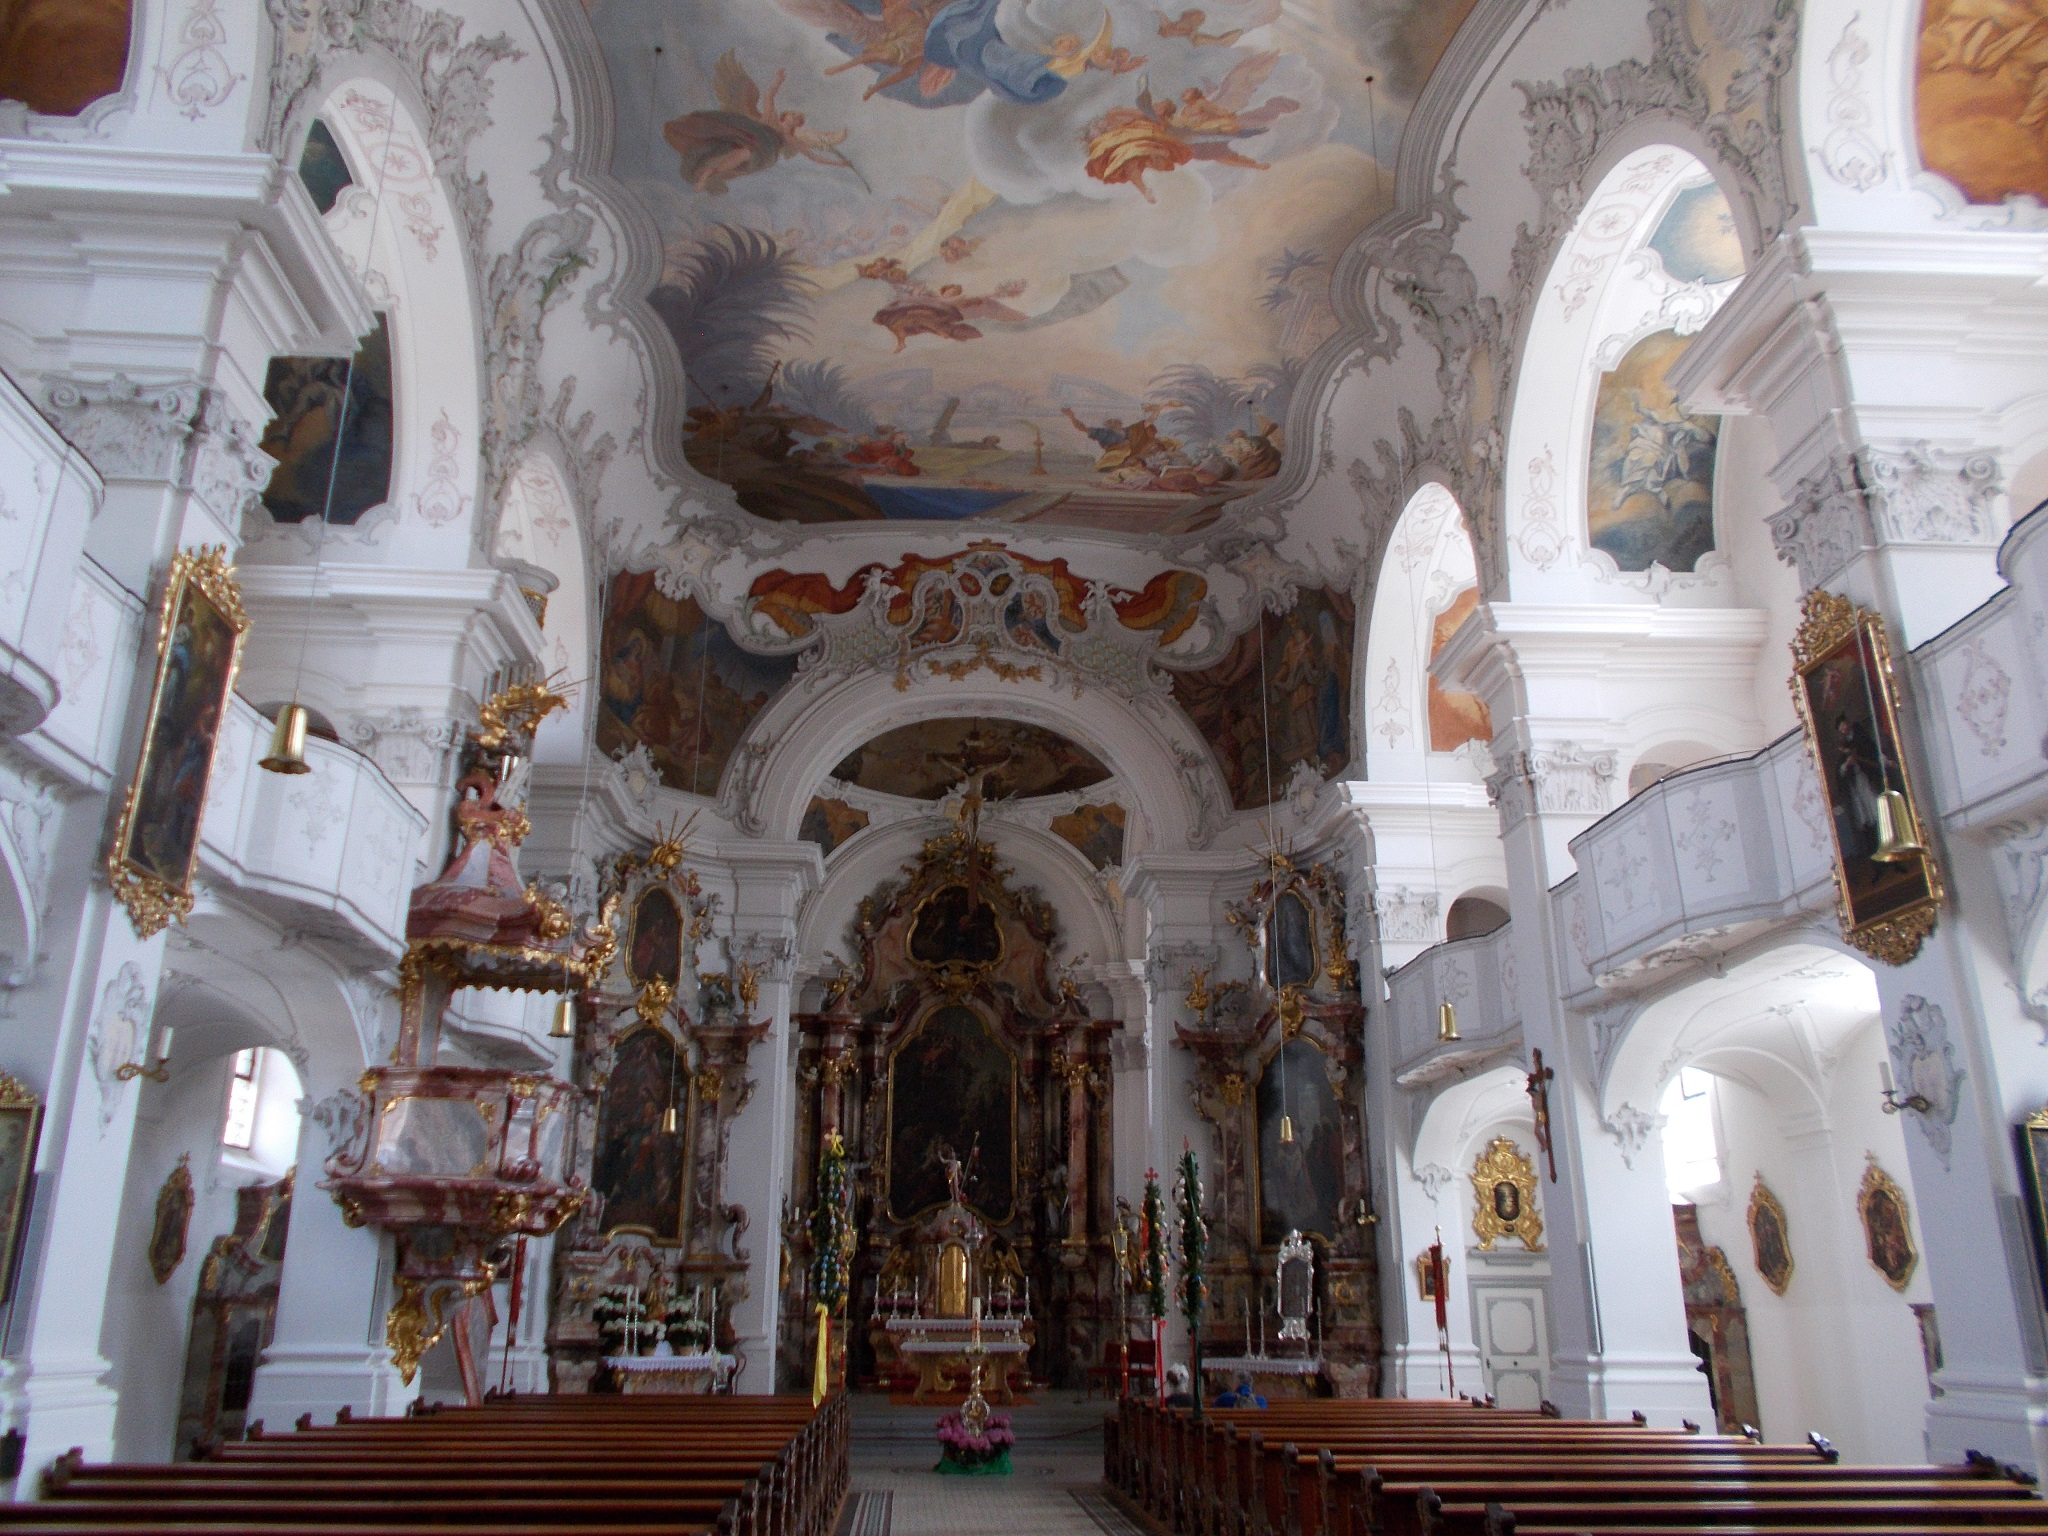 A beautifully painted church interior with a vast painting on the ceiling taken at Münster Unserer Lieben Frau in Lindau, Germany.